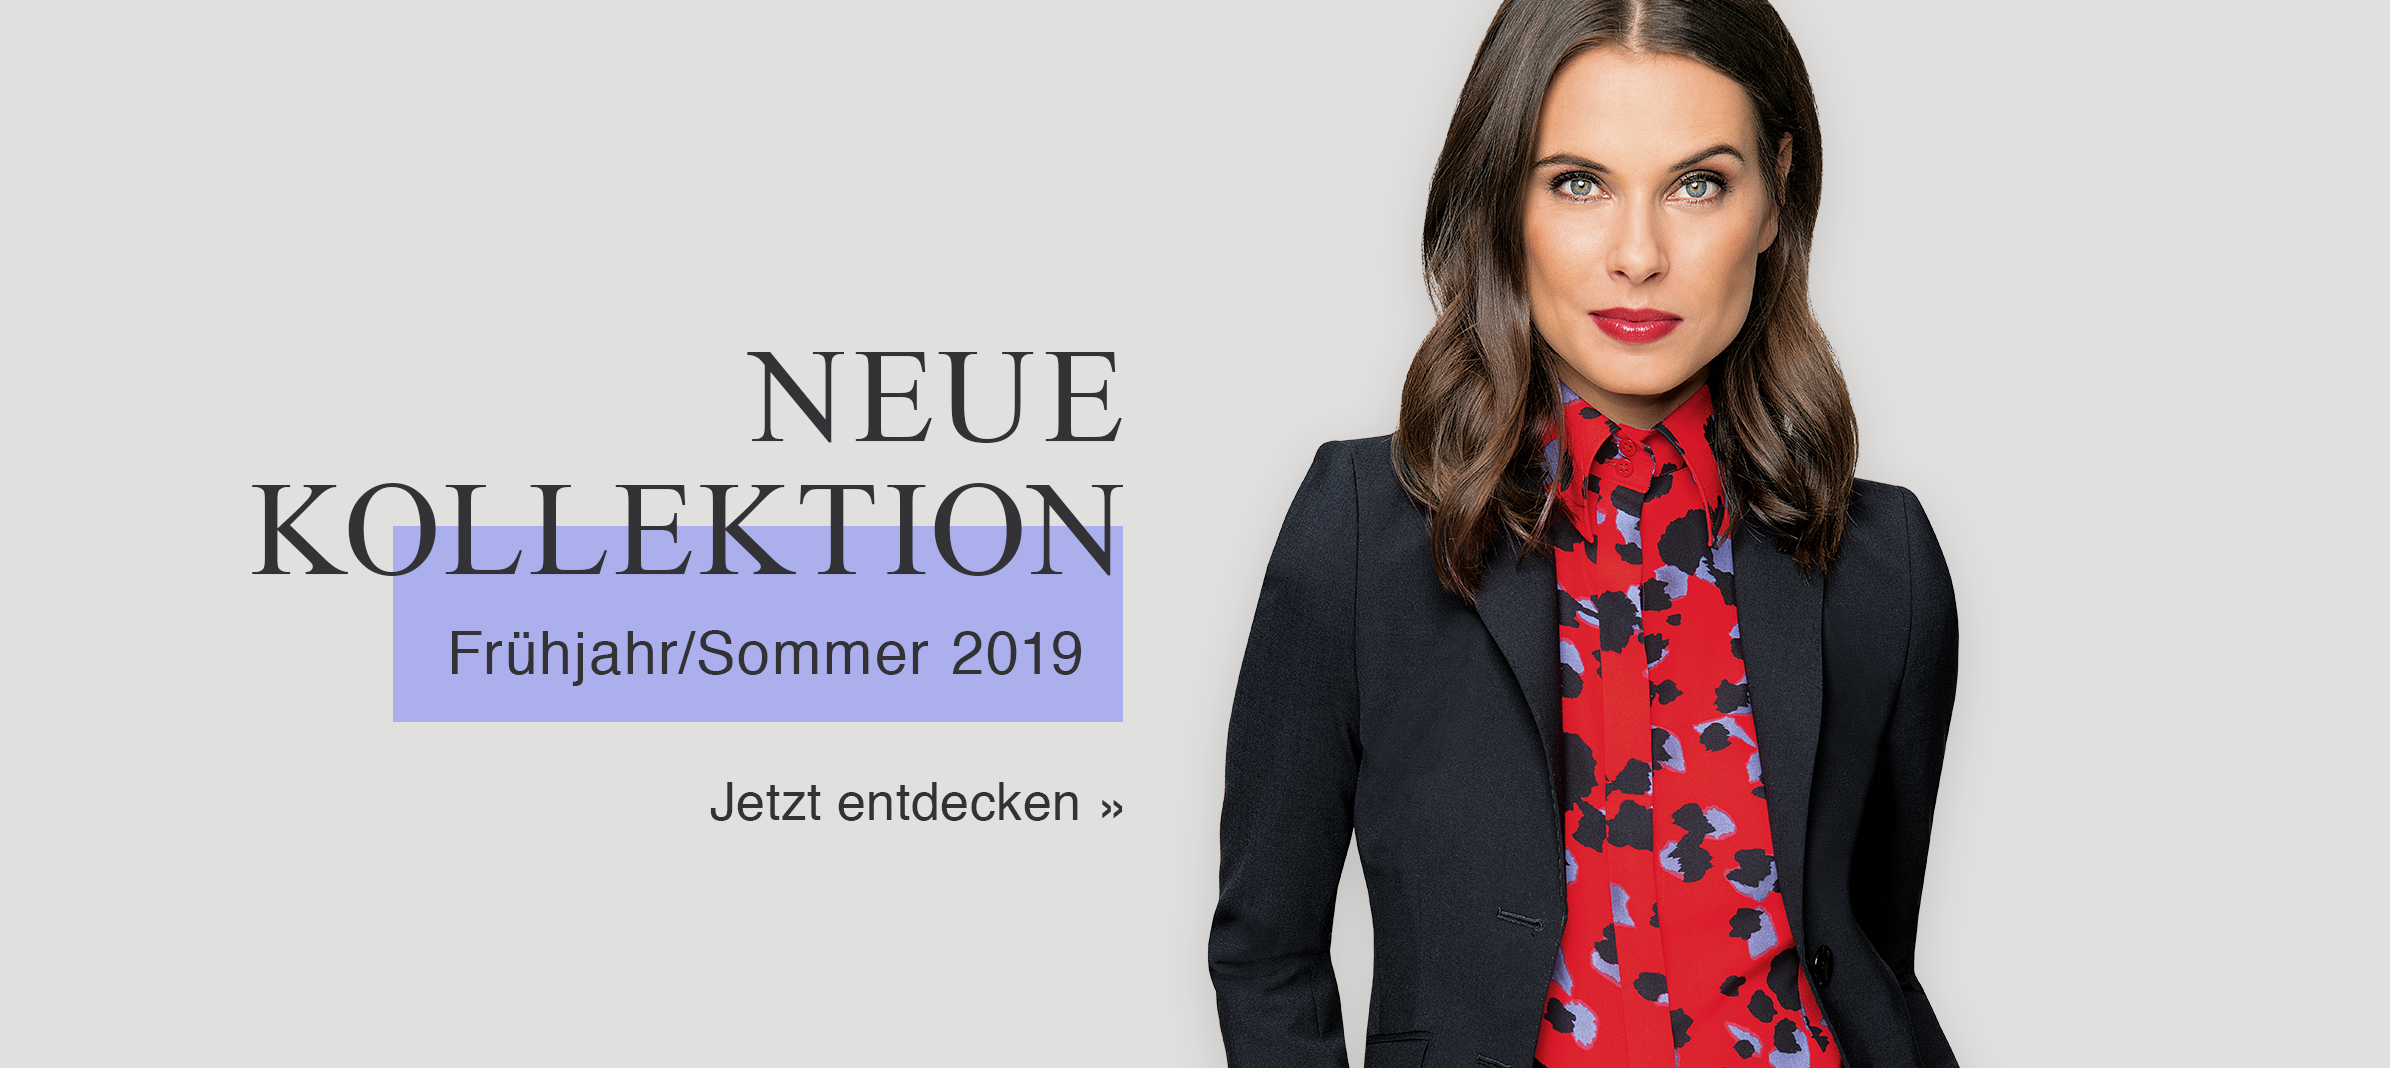 Neue Kollektion - Damen